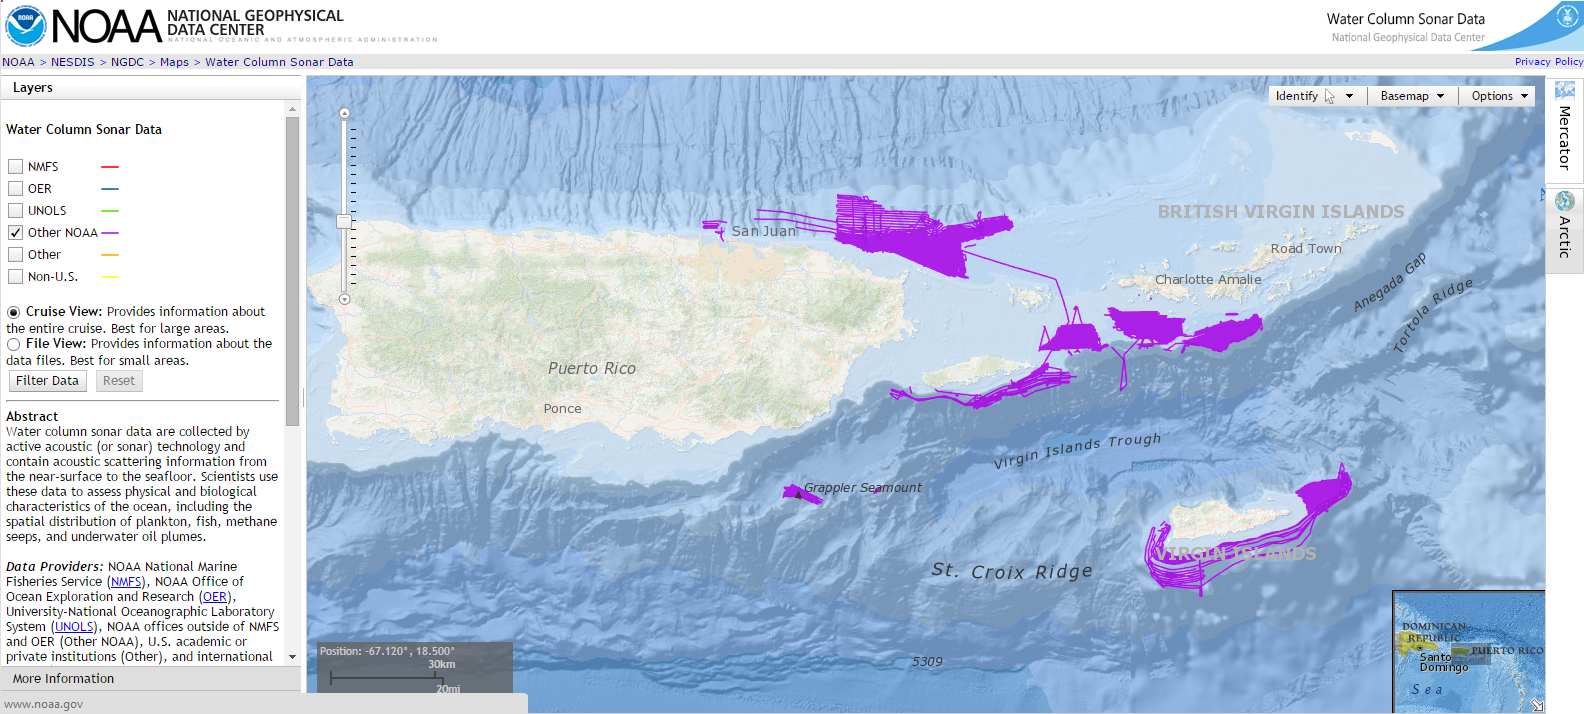 The National Geophysical Data Center Water Column Sonar Data Viewer showing fishery echosounder survey lines conducted by NCCOS from 2010 to 2014 in the US Caribbean.